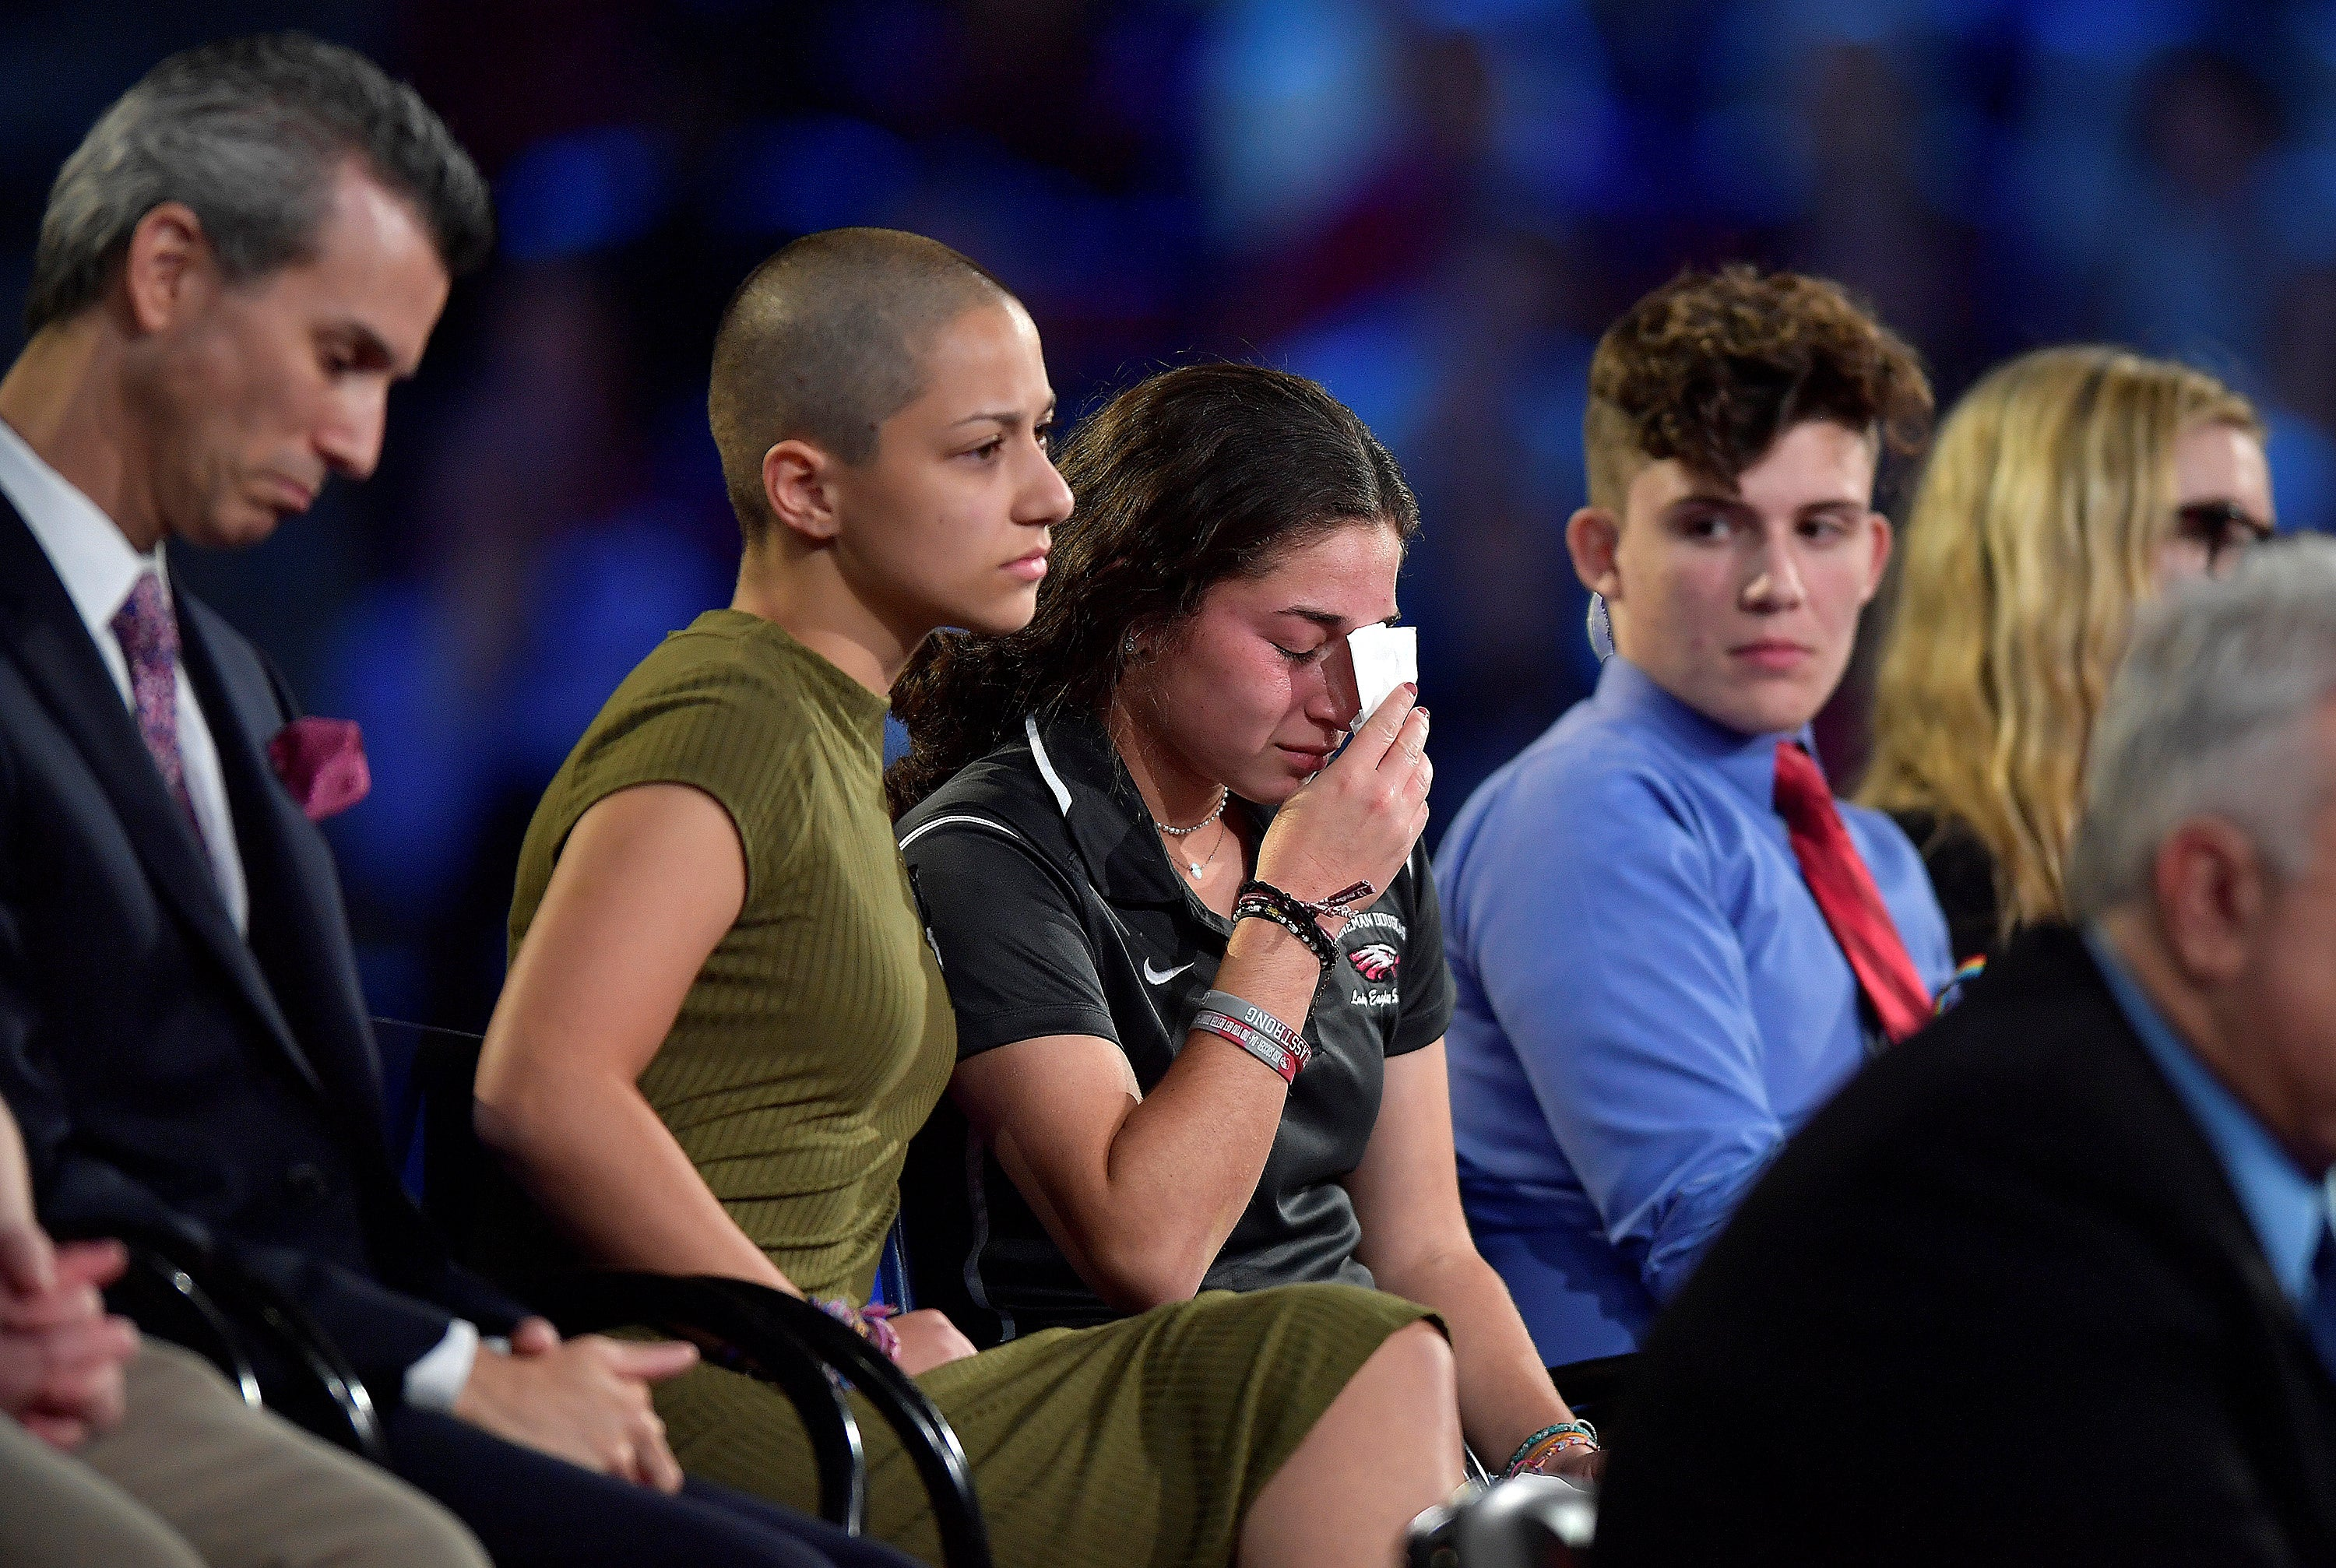 Marjory Stoneman Douglas High School student Emma Gonzalez comforts a classmate during CNN's town hall Wednesday night.